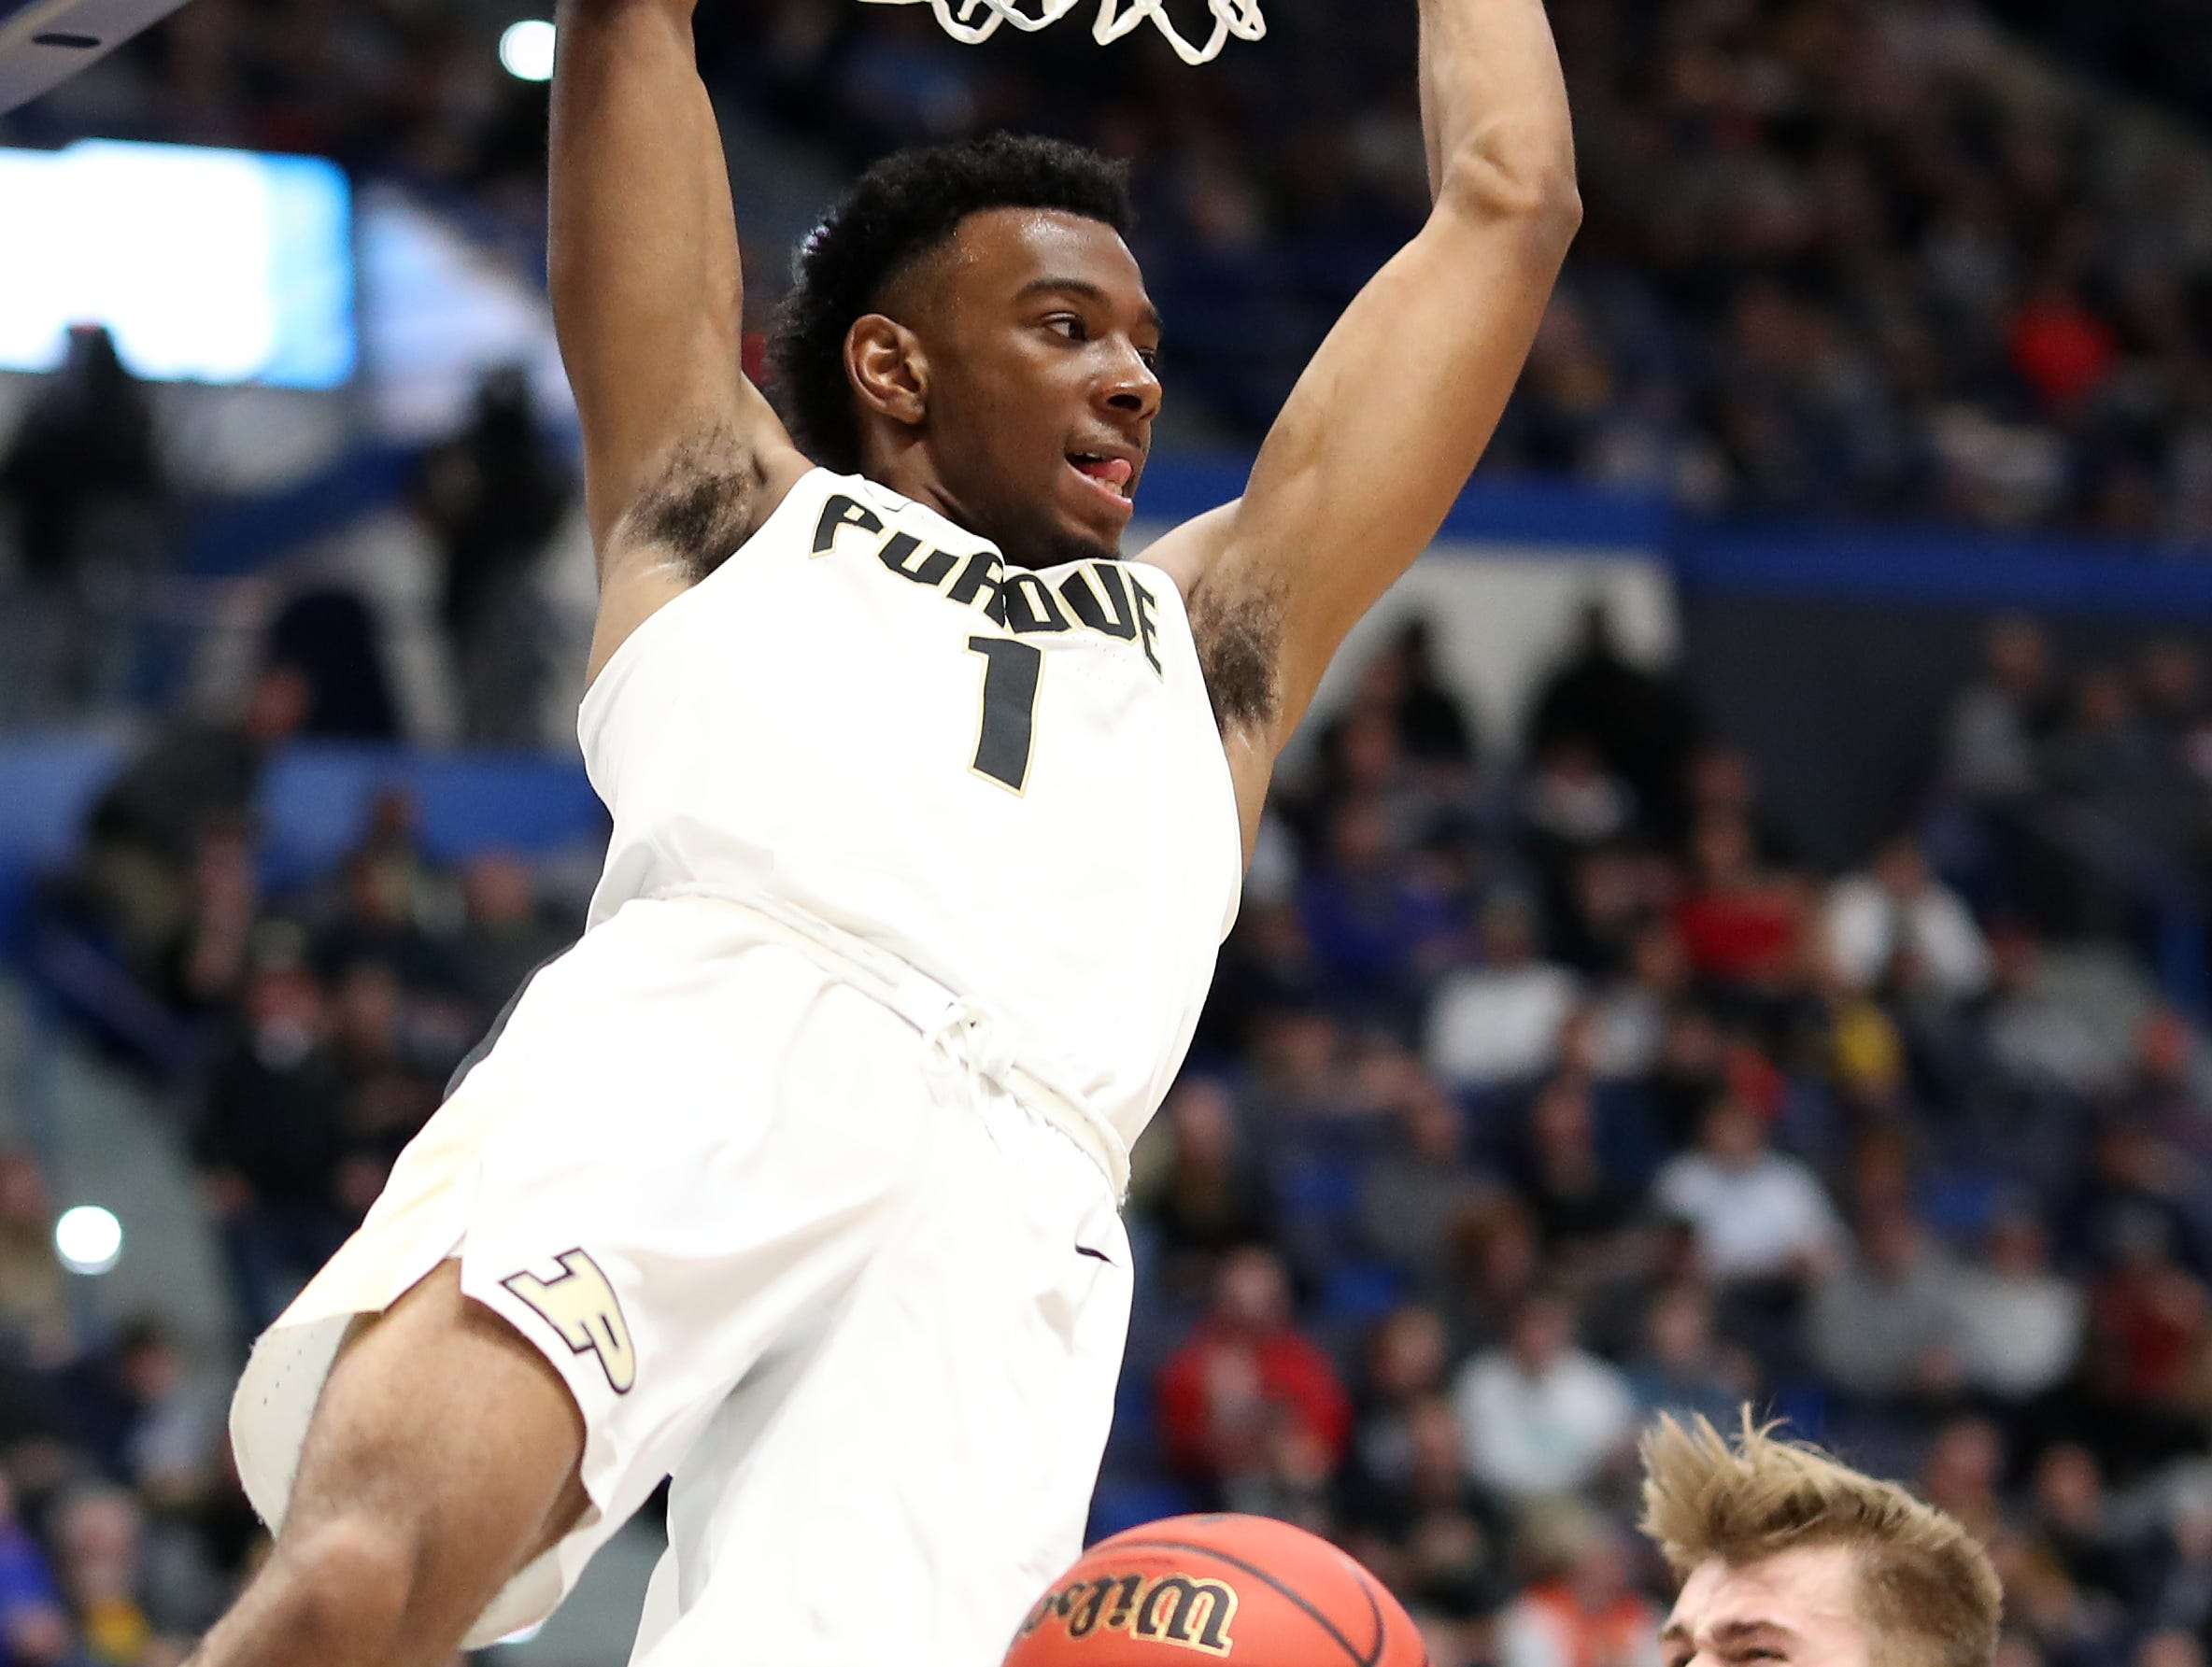 Aaron Wheeler #1 of the Purdue Boilermakers dunks in the first half against the Old Dominion Monarchs during the 2019 NCAA Men's Basketball Tournament at XL Center on March 21, 2019 in Hartford, Connecticut.